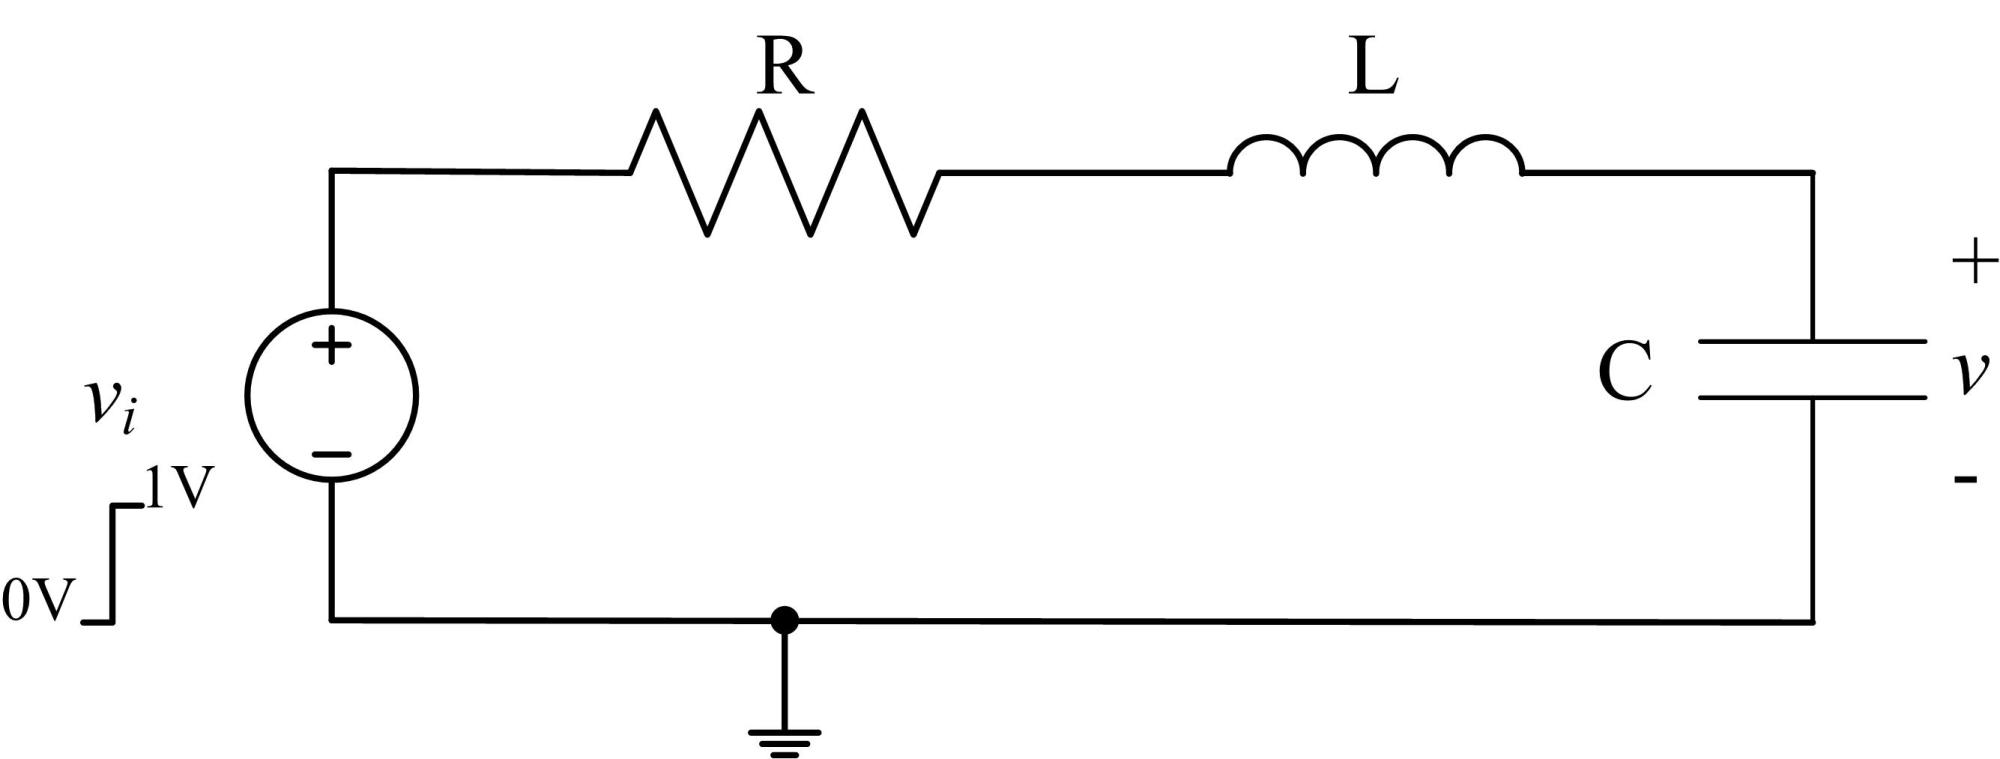 hight resolution of lc circuit diagram